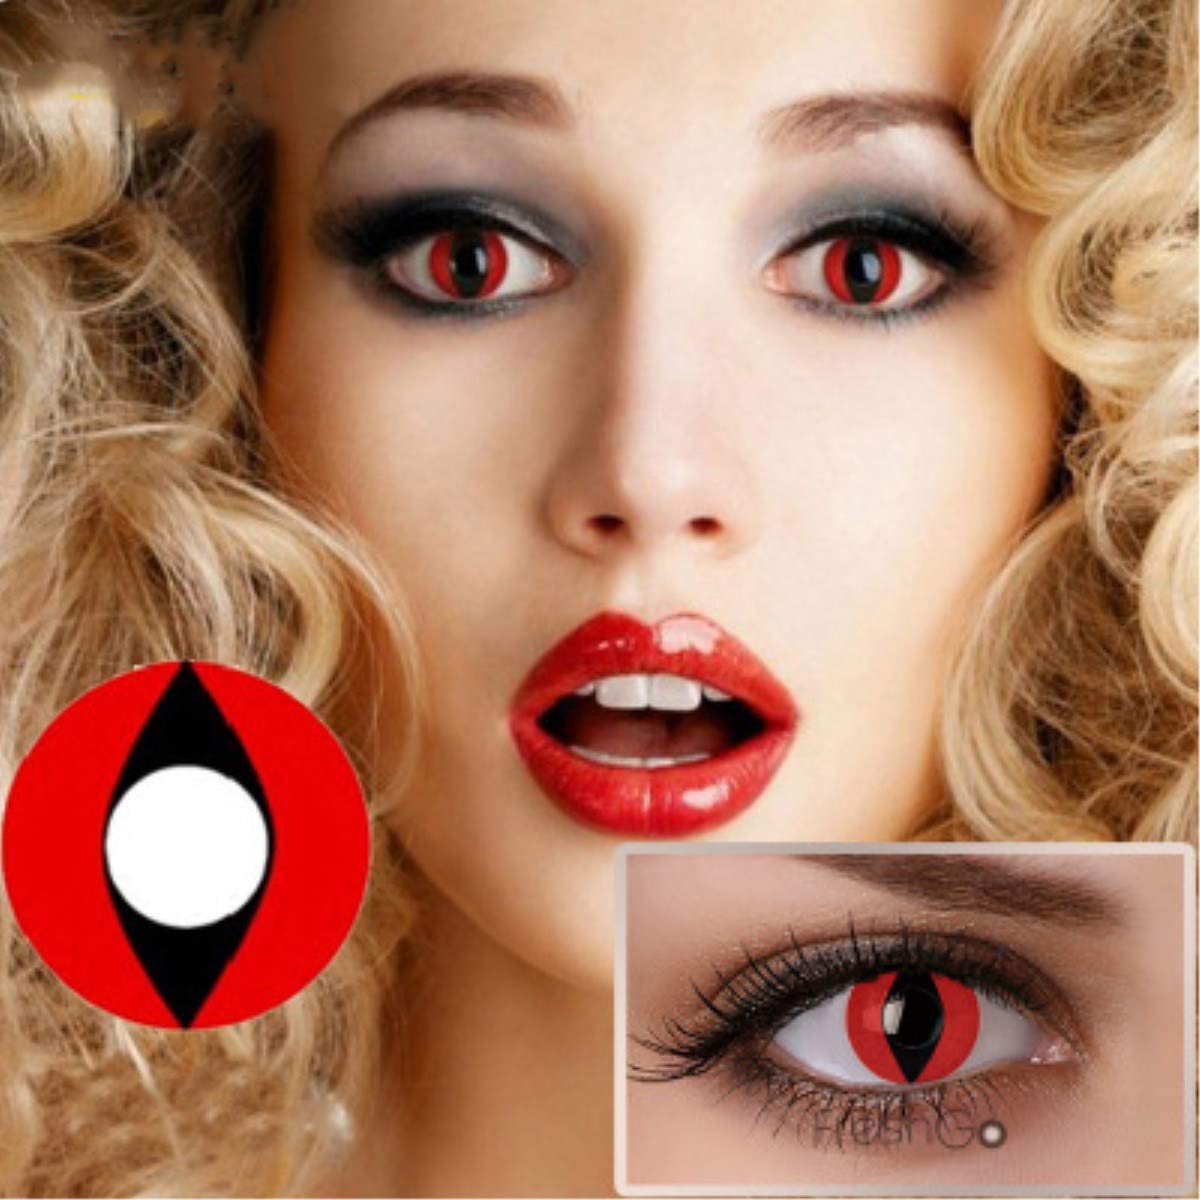 Yaogroo Mult-icolor Cosplay Eyes Cute Colored Charm and Attractive Fashion Contact Lenses Color Blends Cosmetic Makeup Eye Shadow Halloween Carnival Cosmetic Cosplay Eyes (Pattern3)